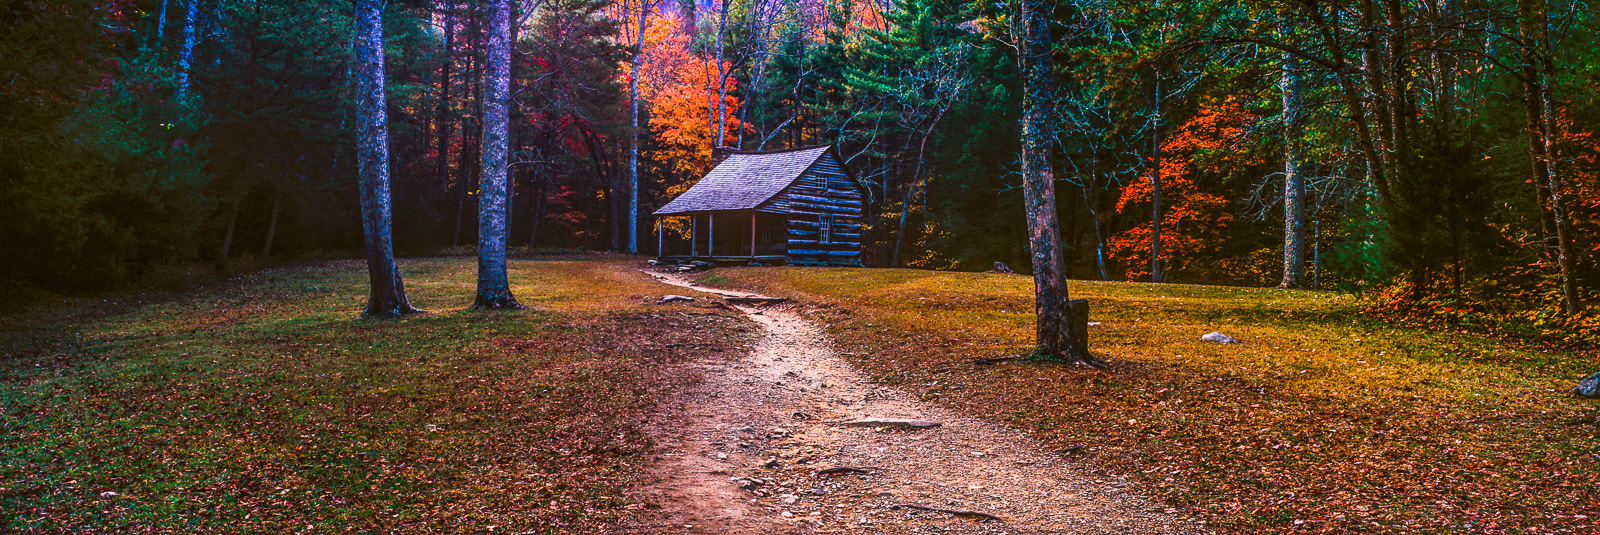 Hideaway Cabin,Smoky, Mountains National Park, Tennesse,wood, horizontal,panoramic,landscape,green, photo